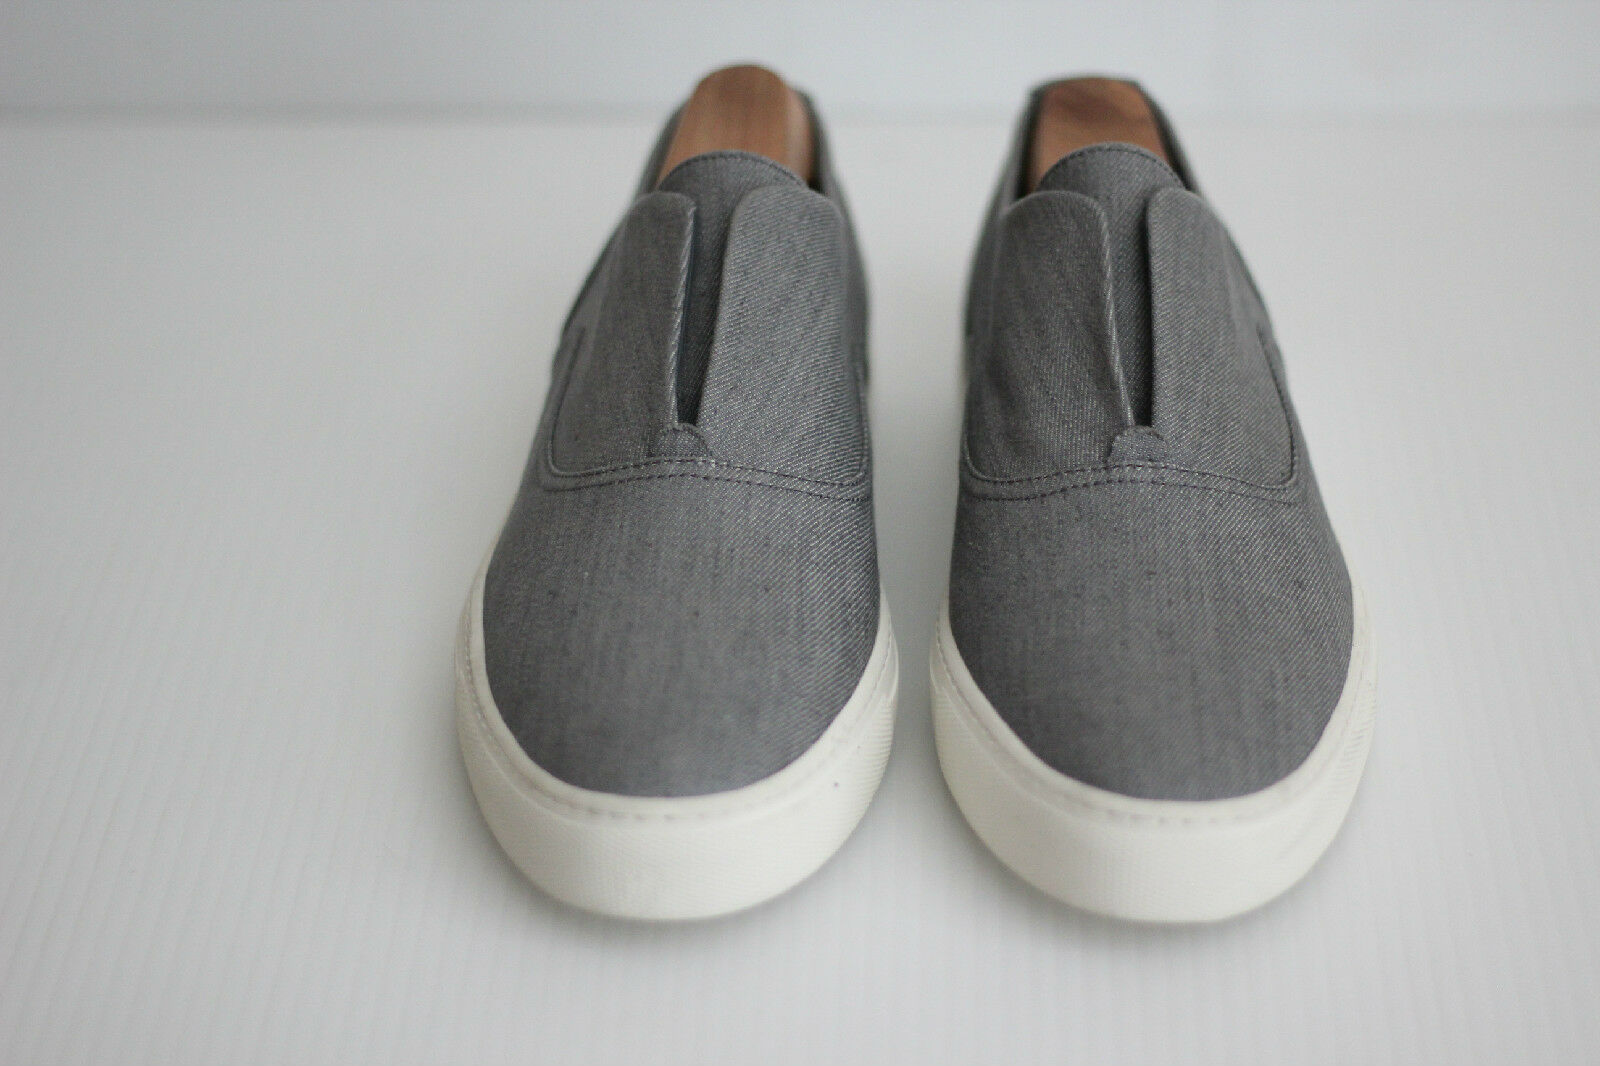 Vince - 'Nelson' Slip-On Sneaker - Vince Gray Denim - 11 M d55da3